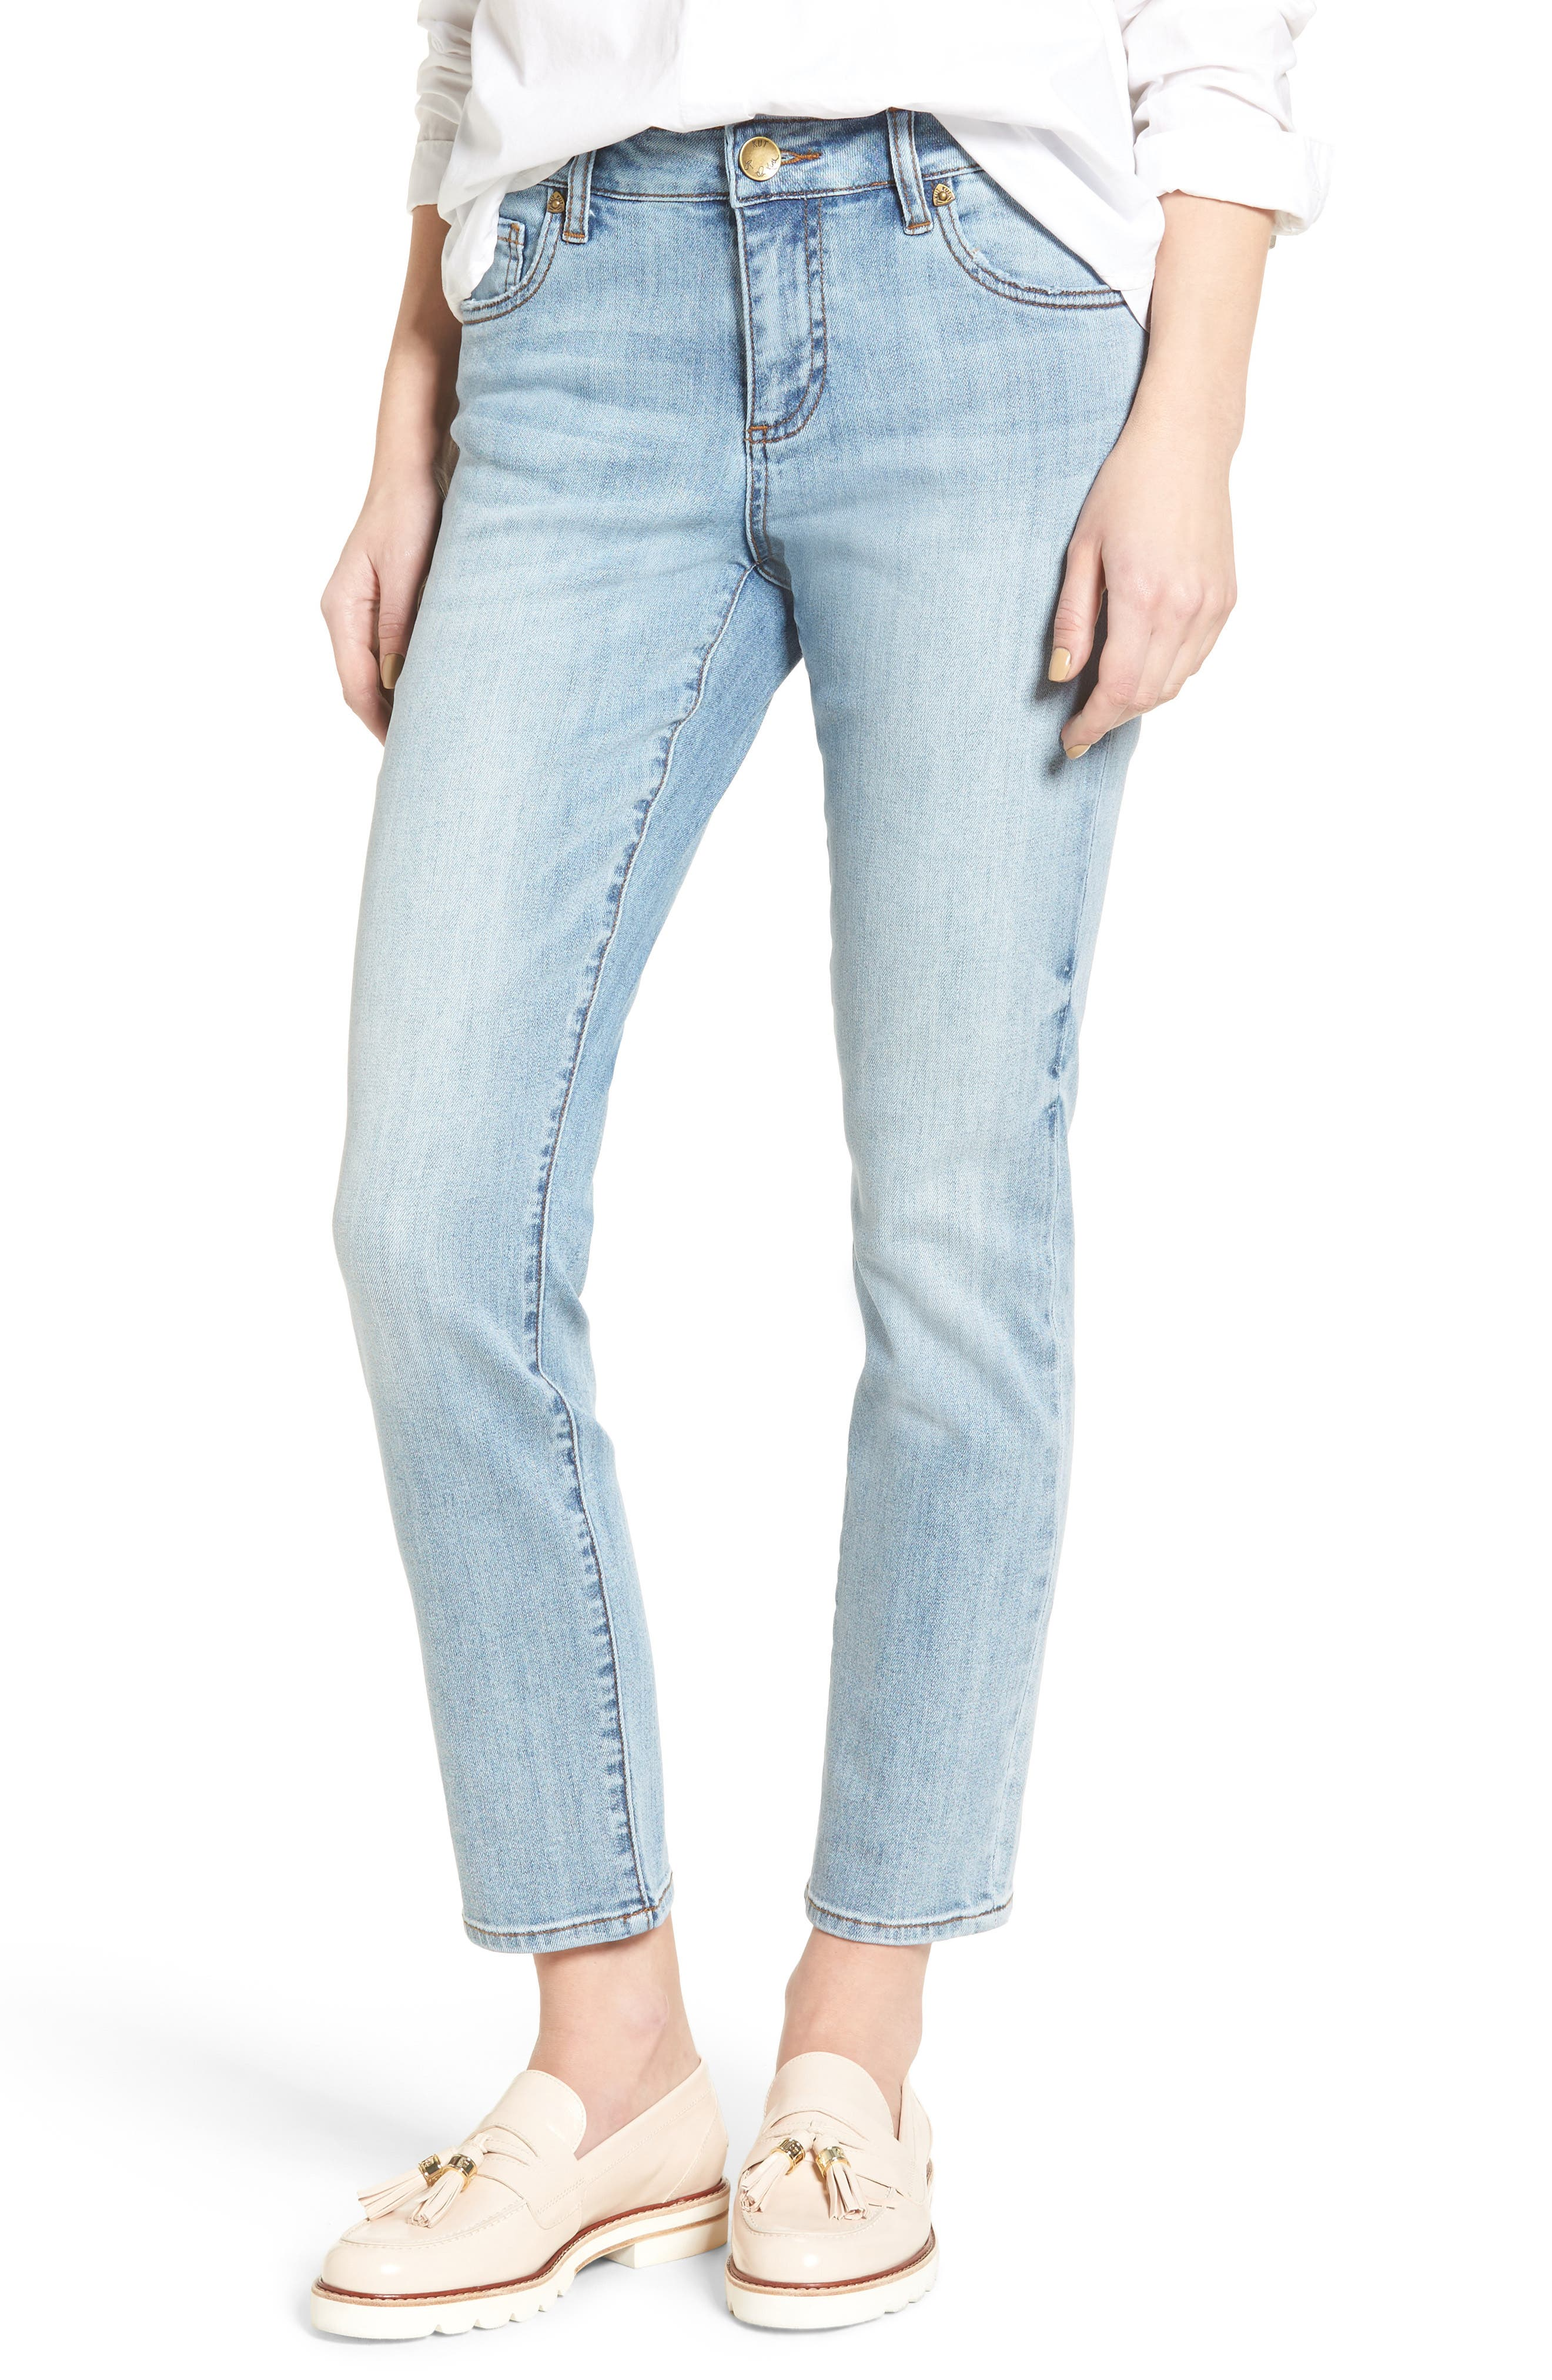 Main Image - KUT from the Kloth Reese Stretch Ankle Straight Leg Jeans (Celebratory)